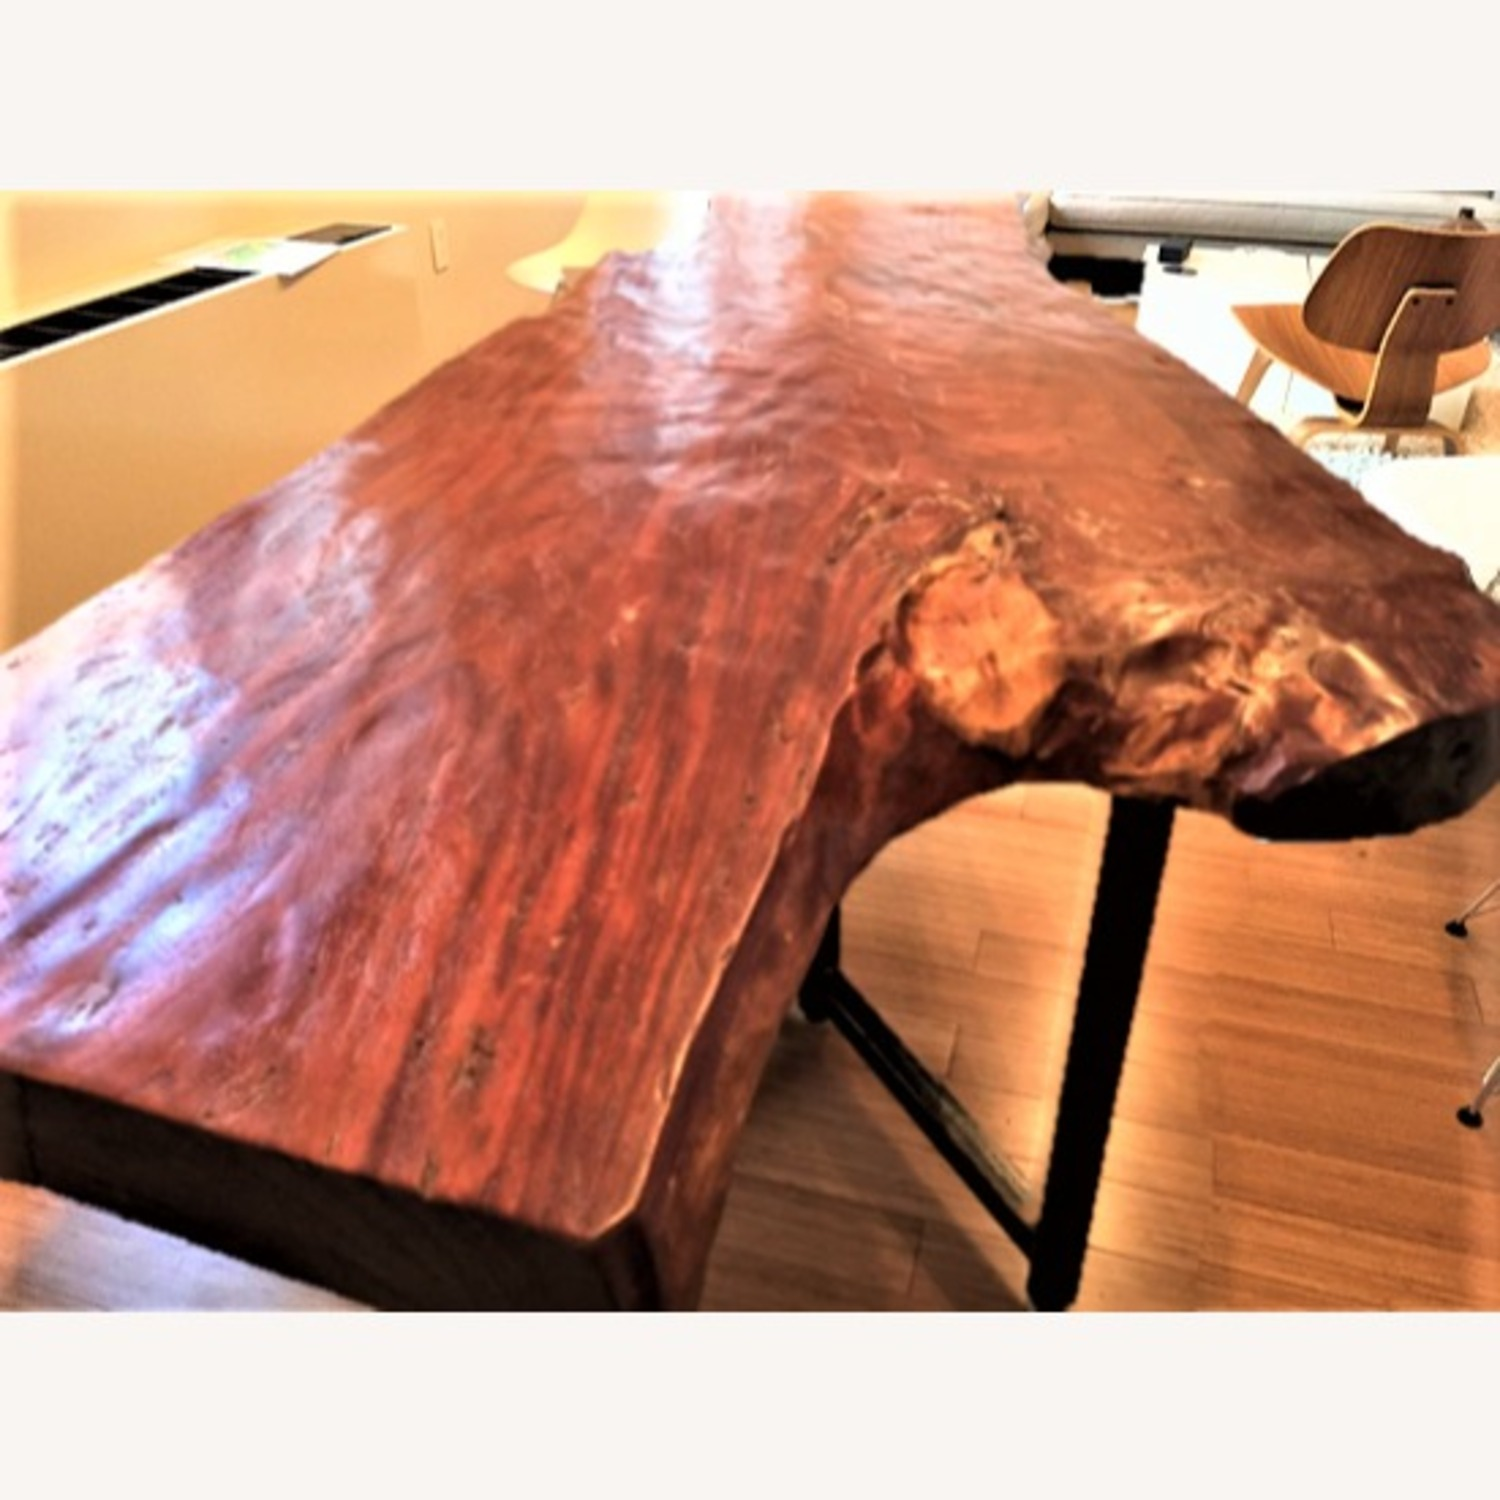 From The Source Hand-Crafted Teak Slab Dining Table - image-9